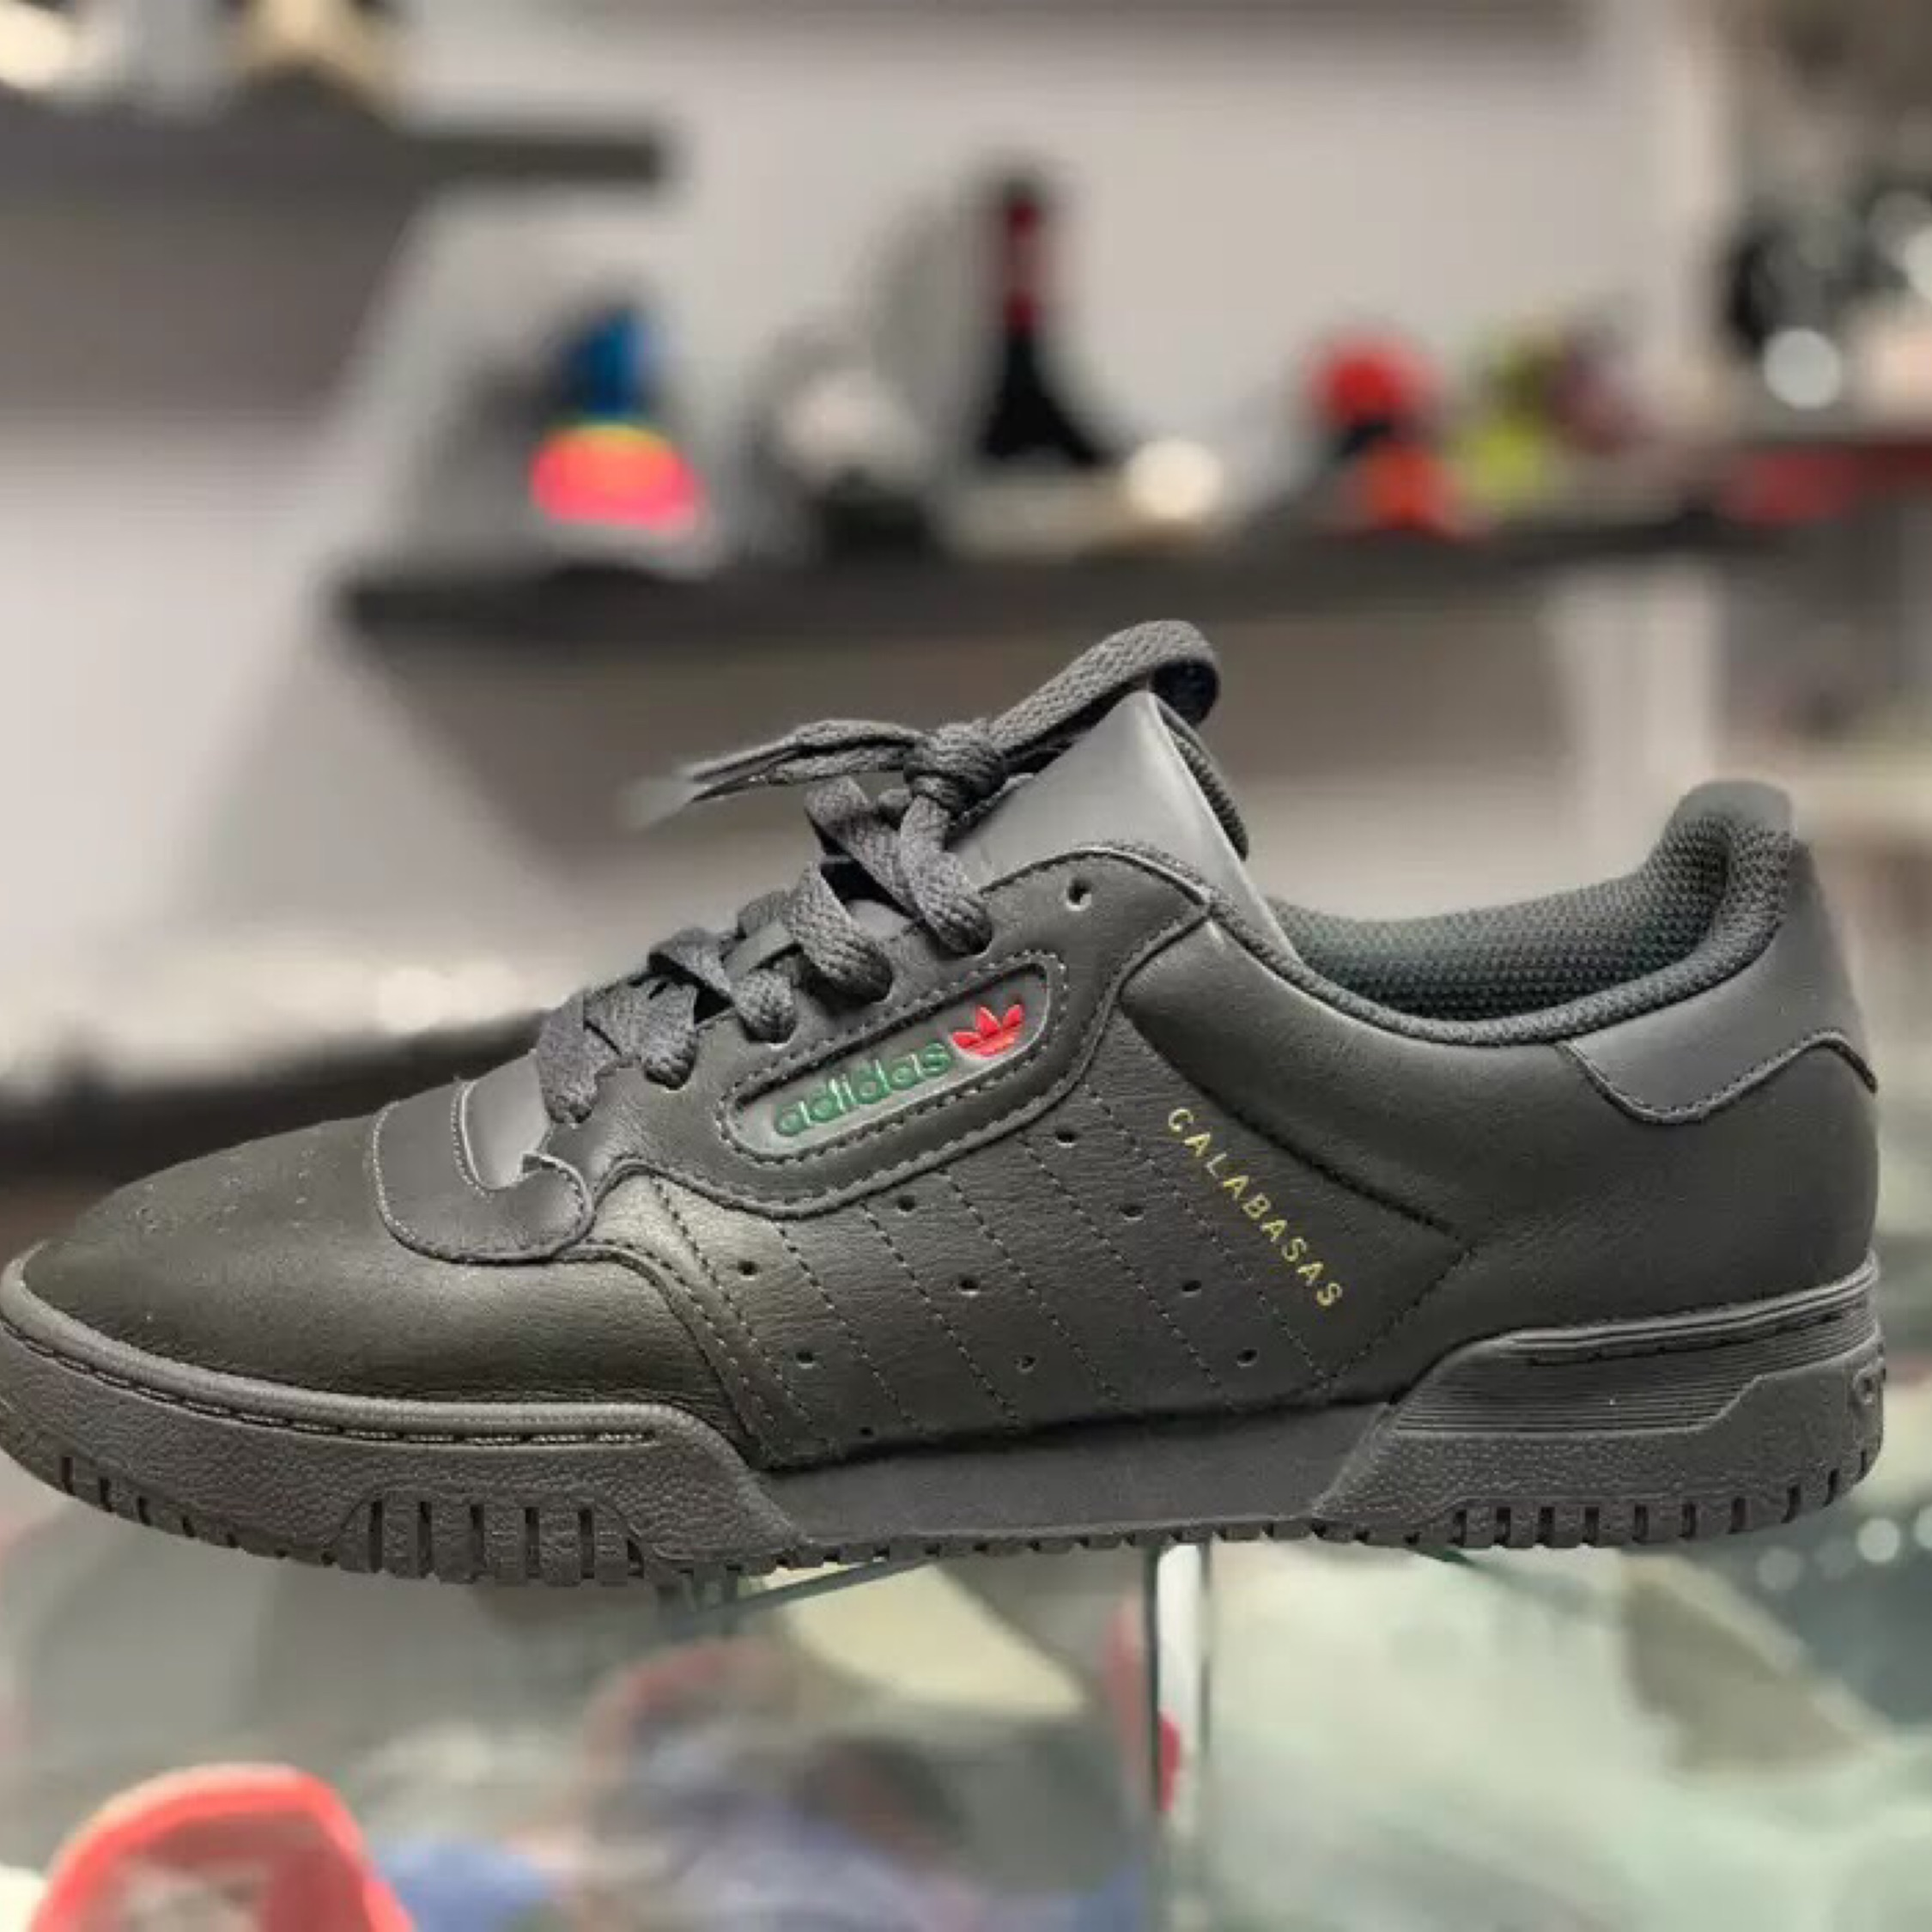 Purchase > yeezy calabasas OFF 67% trivedigroup.in!